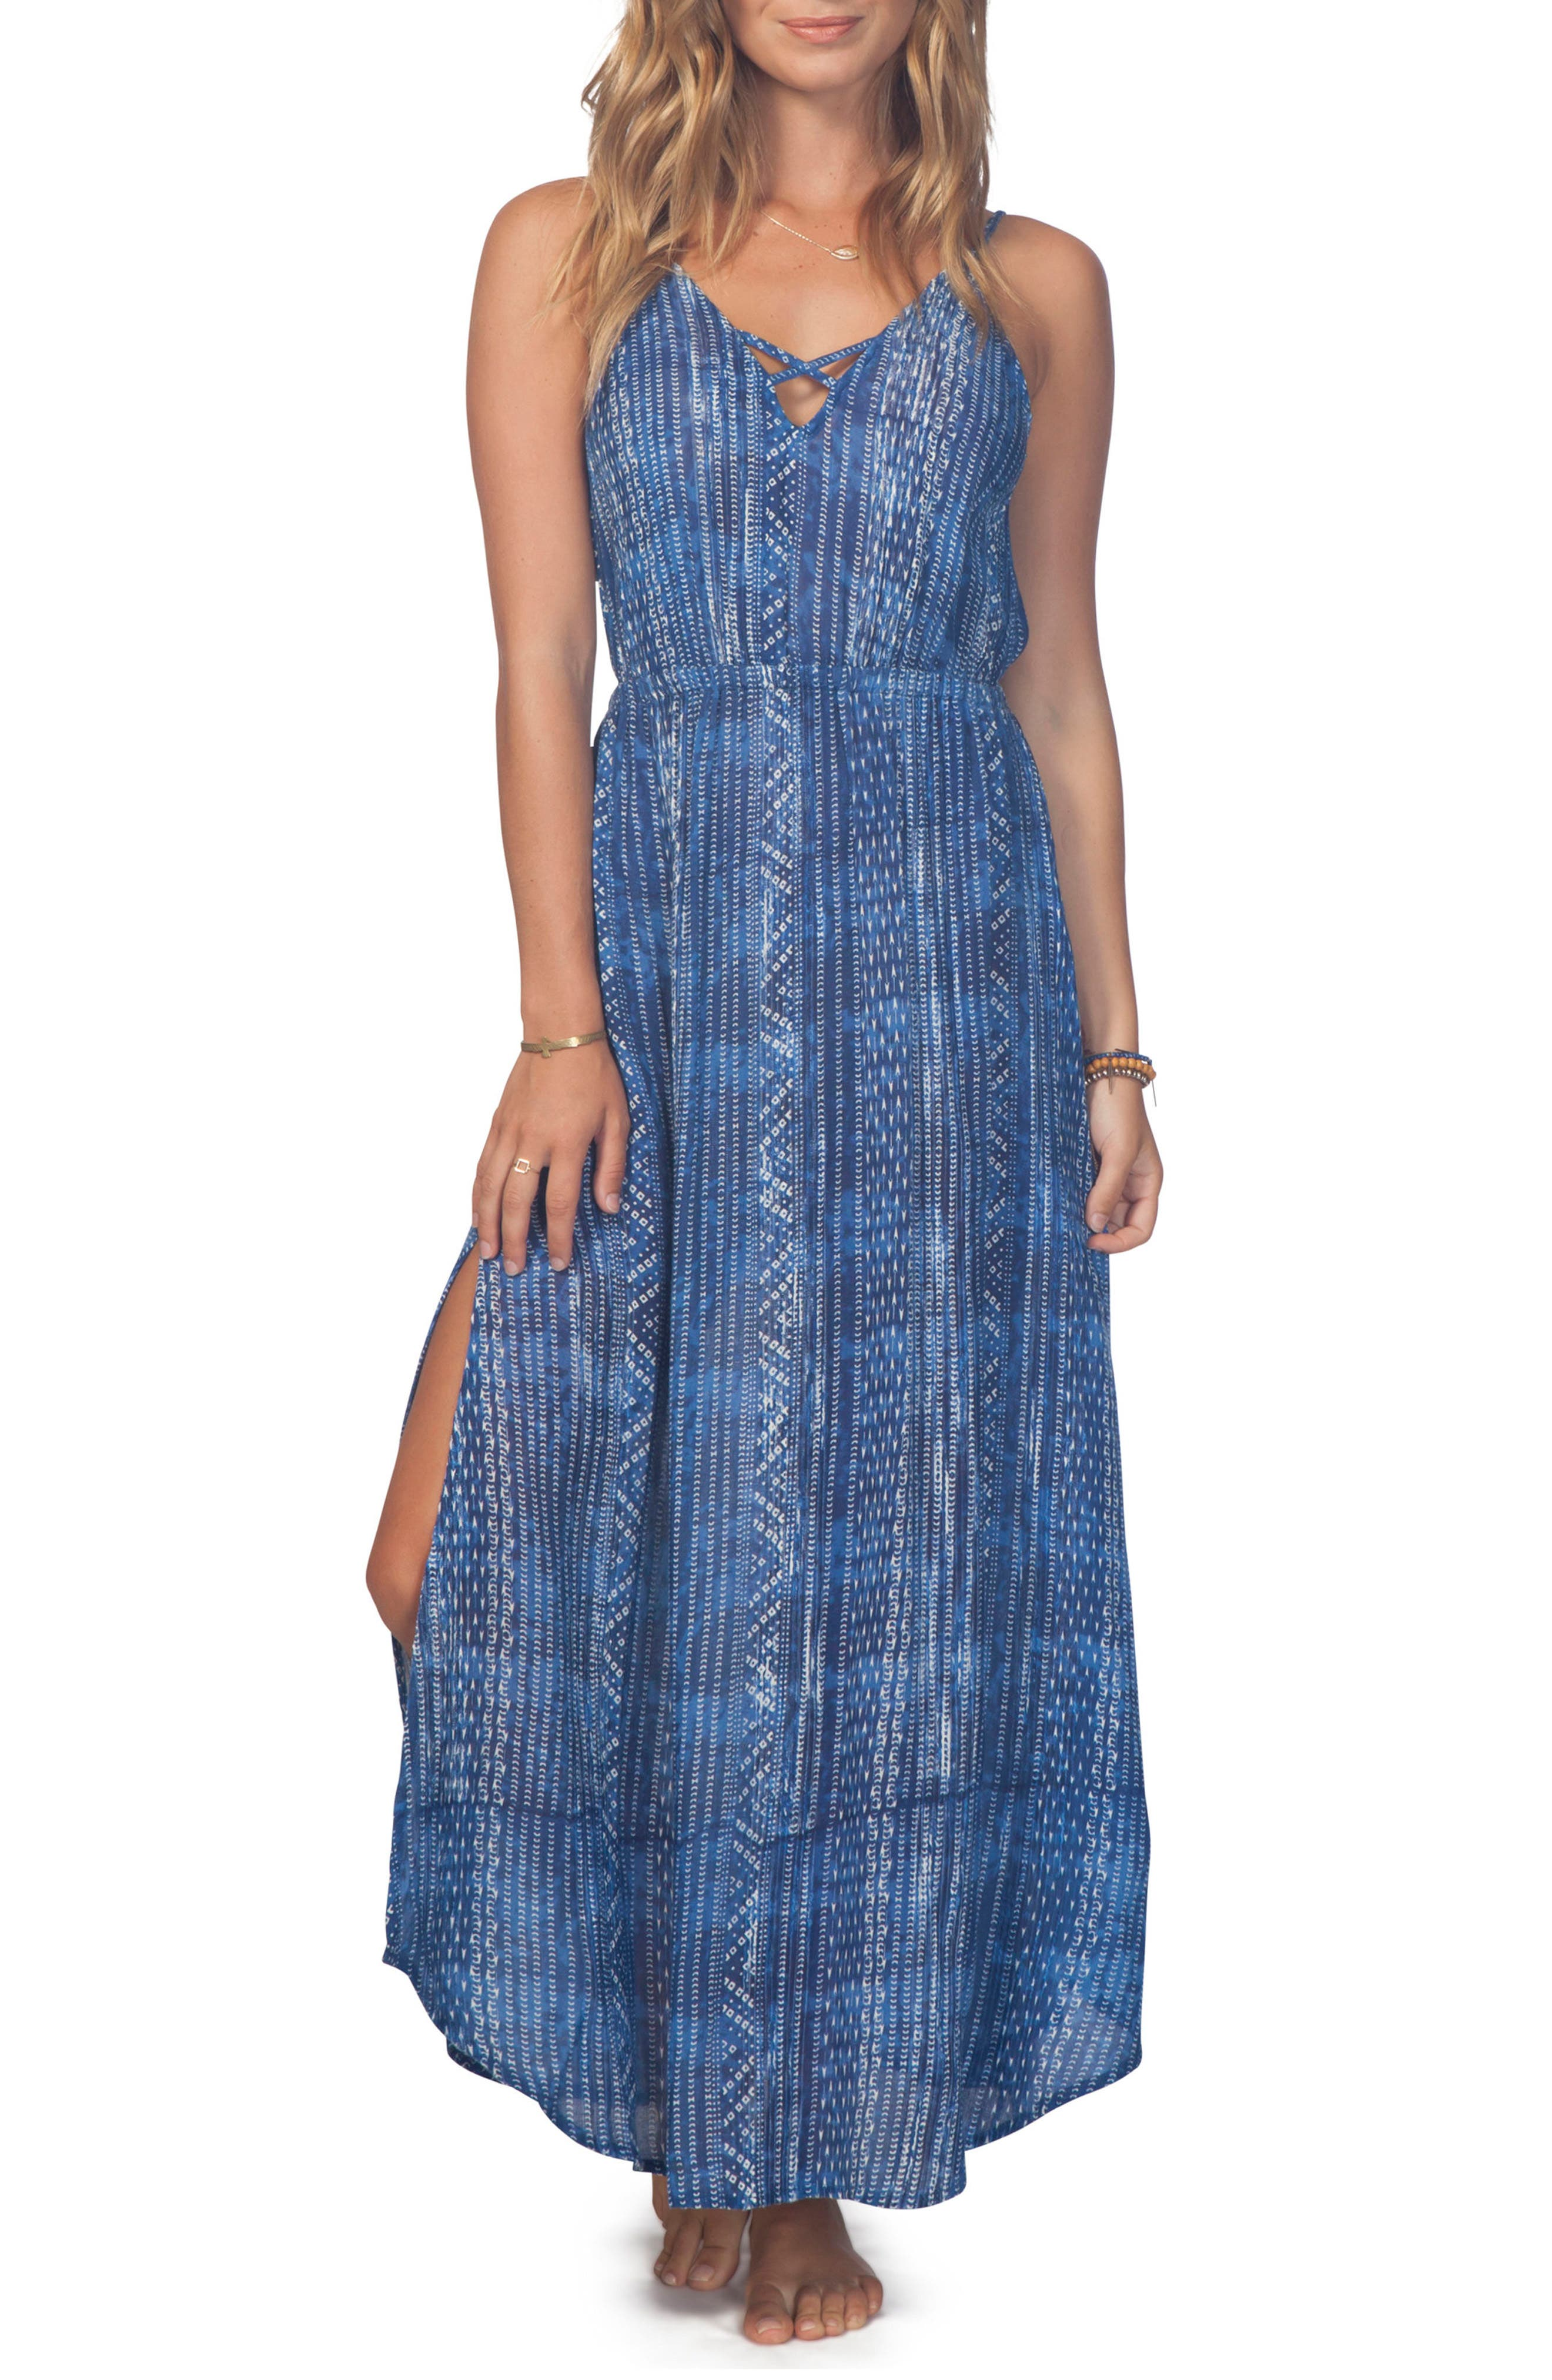 Blue Tides Maxi Dress,                         Main,                         color, Blue